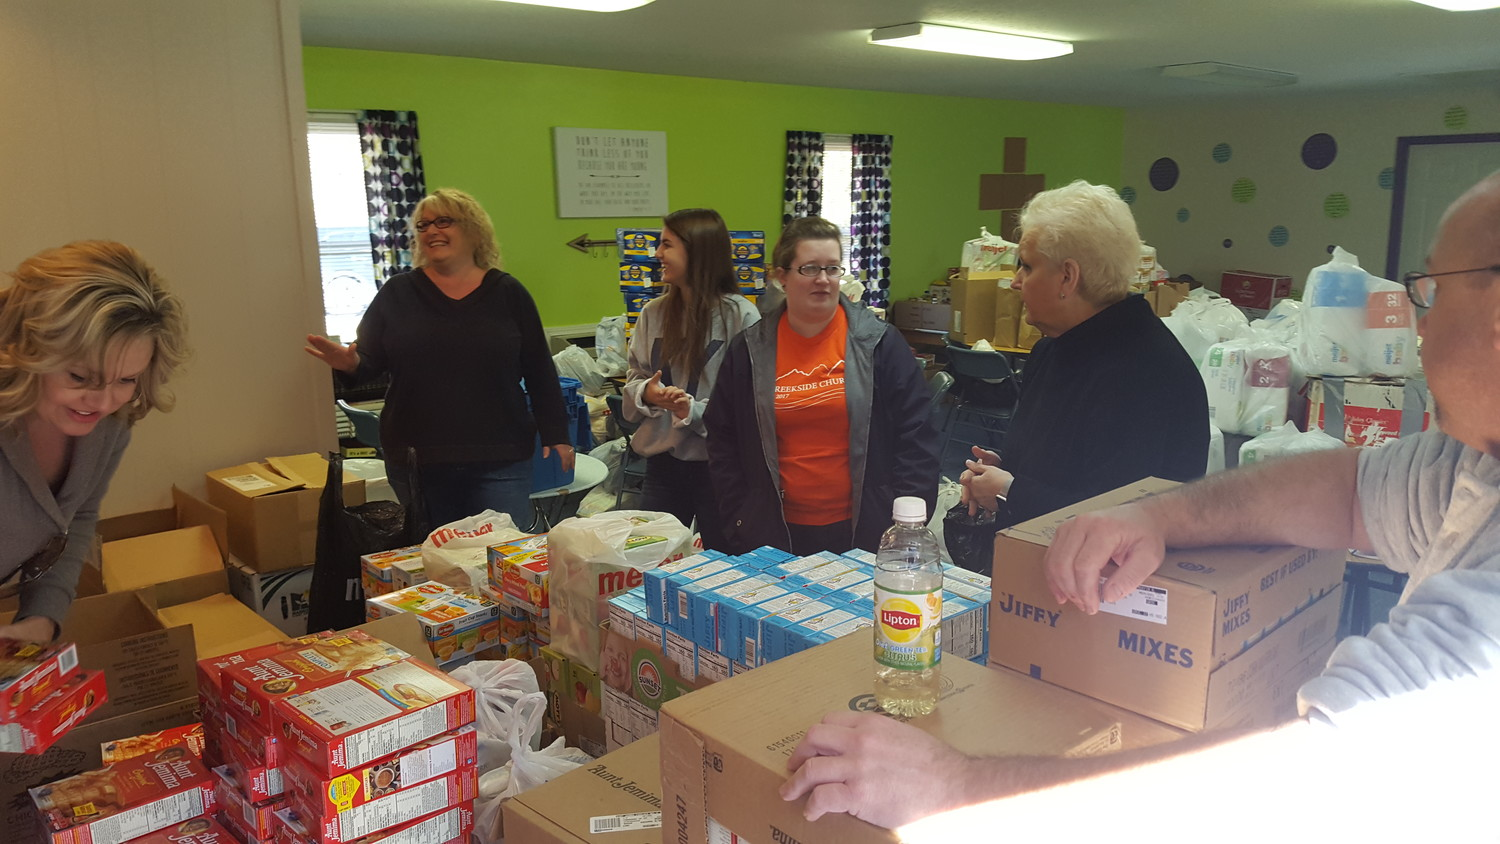 Volunteers deliver supplies to Creekside Church, a new congregation in eastern Kentucky, to help minister to the needs of people in Pike County.